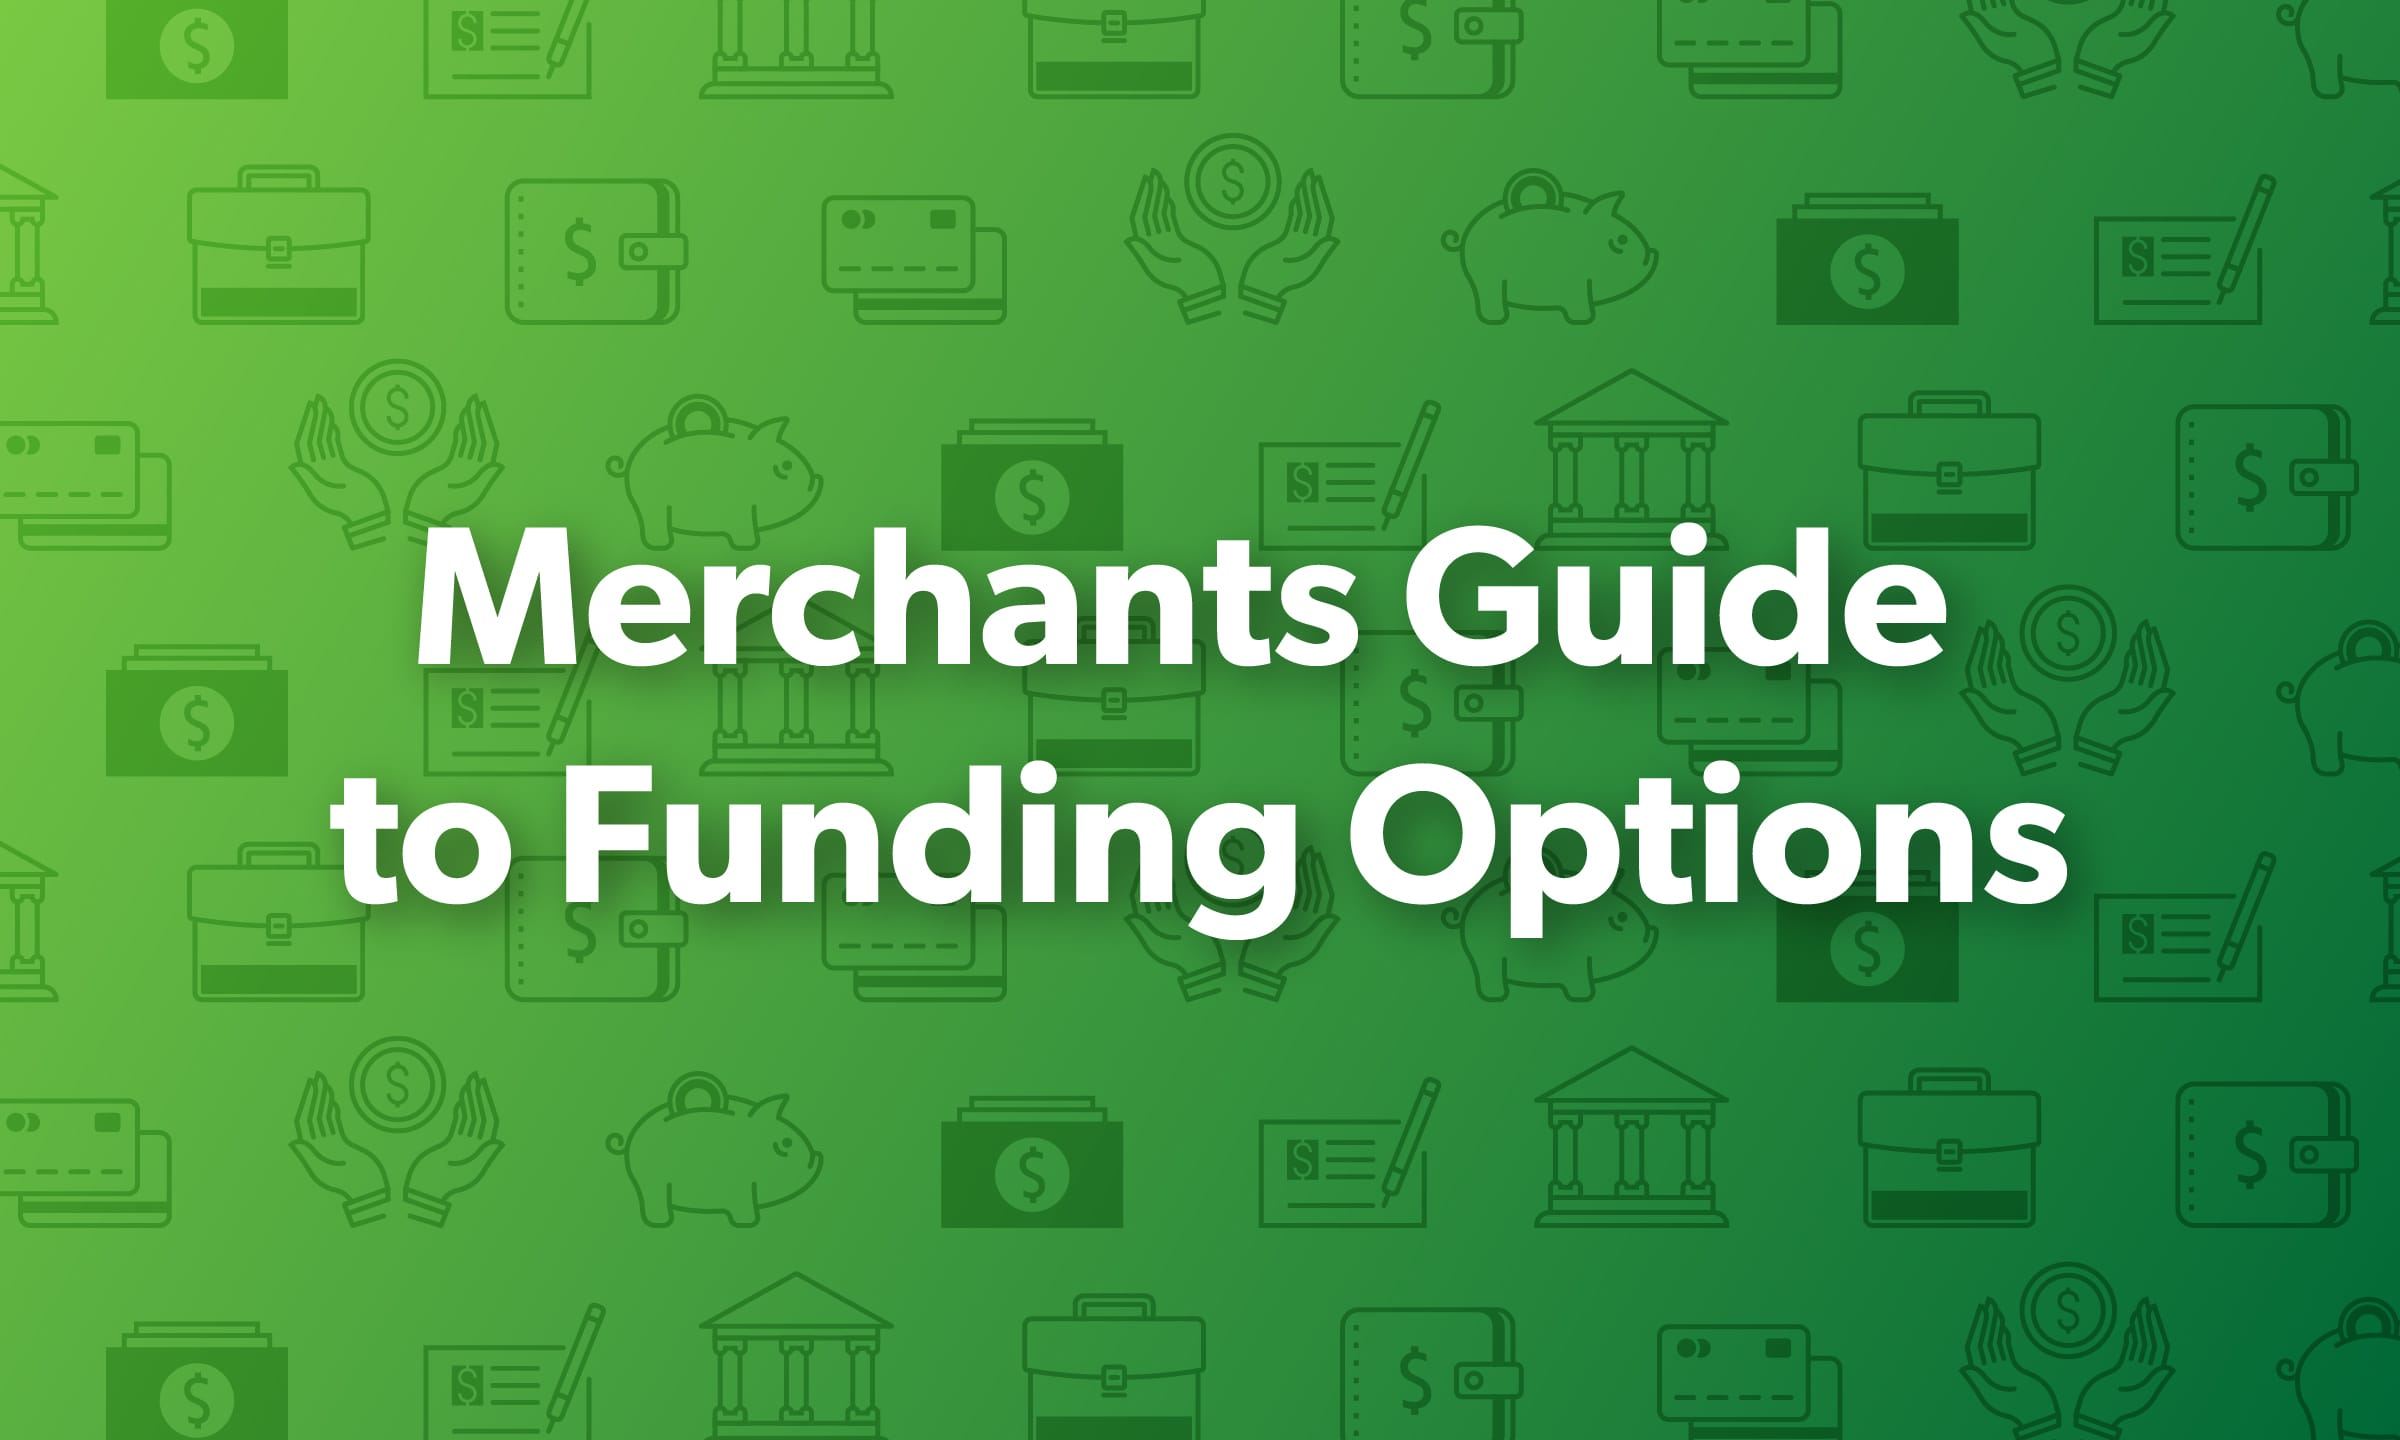 Funding Options for Small Merchants